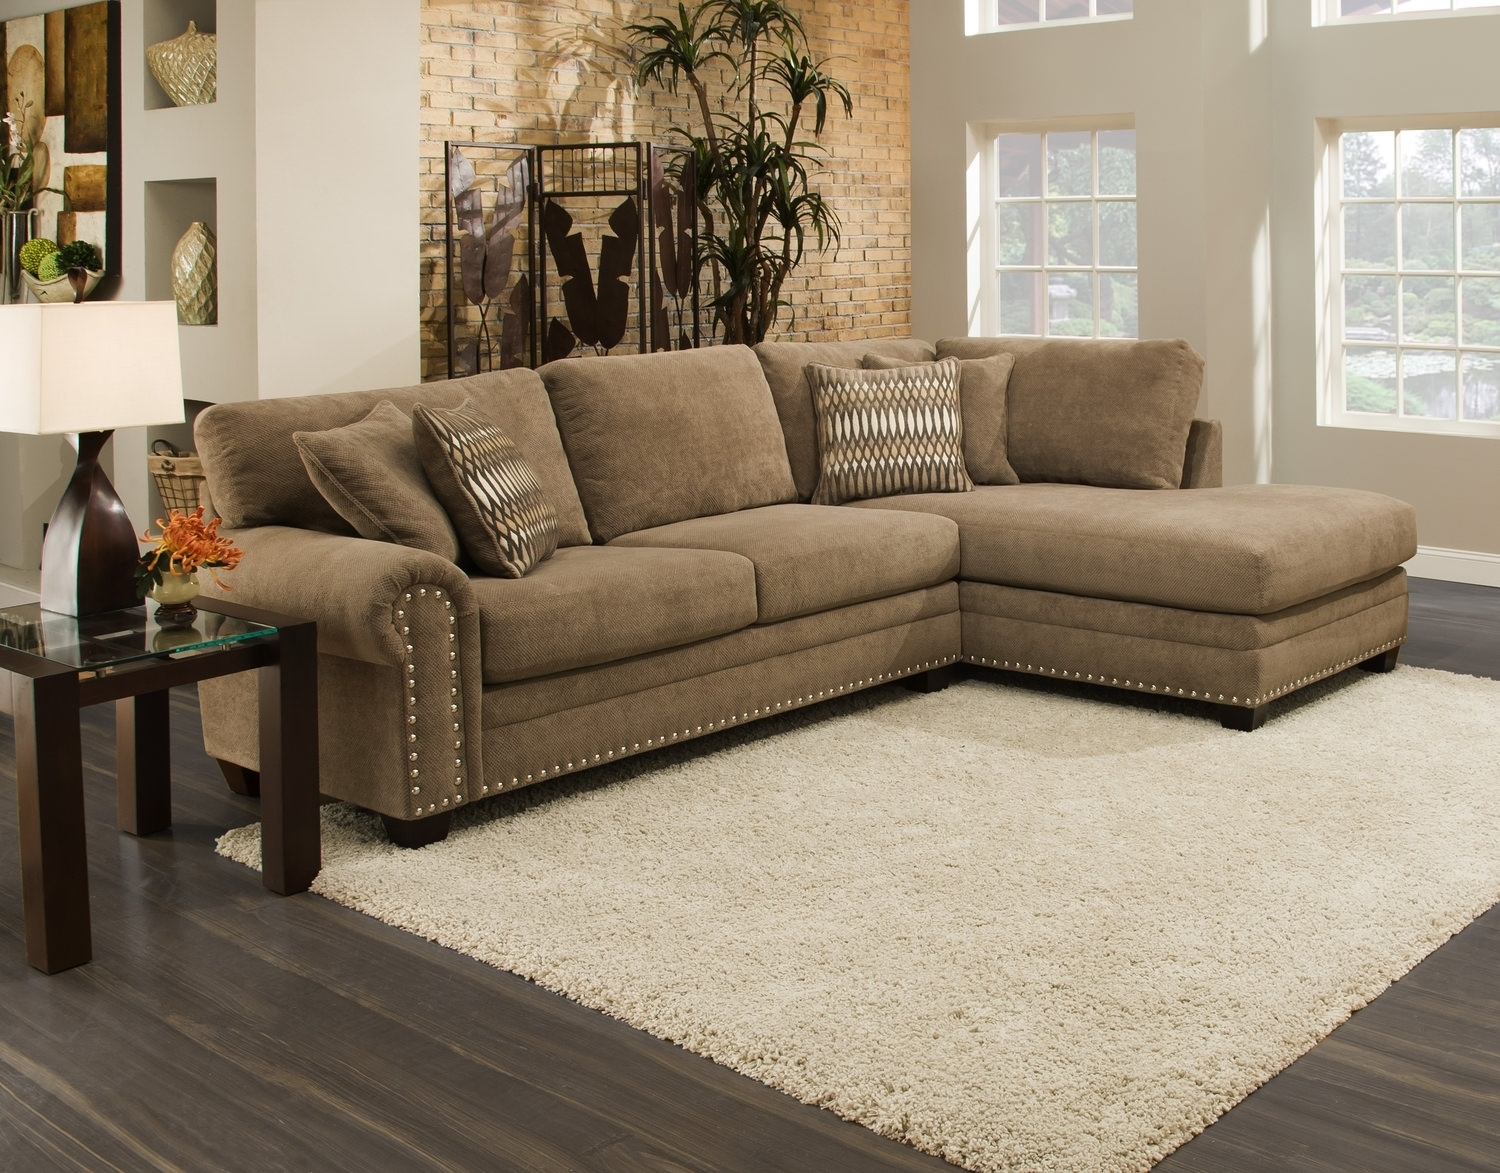 Sectional Sofas Duluth Mn • Sectional Sofa Intended For Duluth Mn Sectional Sofas (Image 8 of 10)